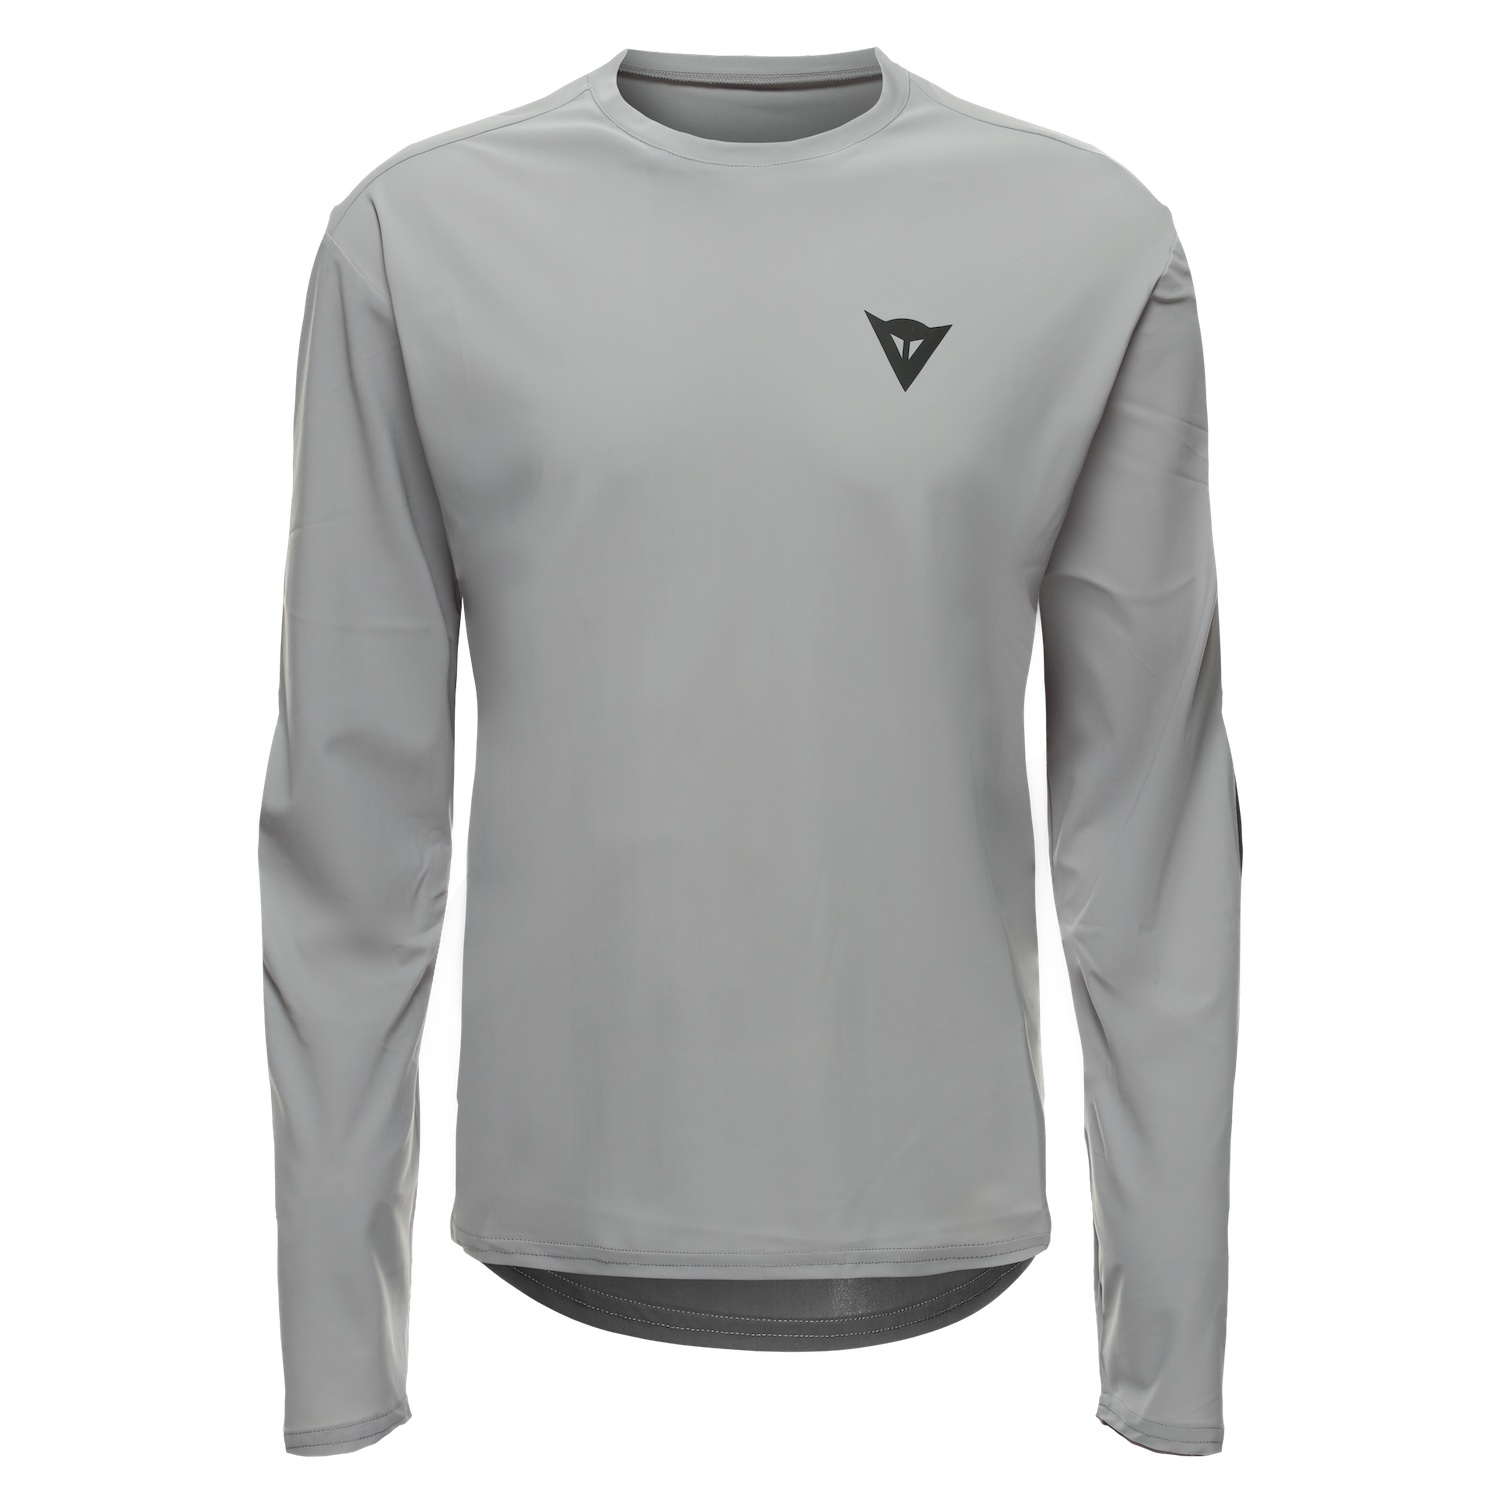 Dainese – Maglia HGR JERSEY LS GRAY